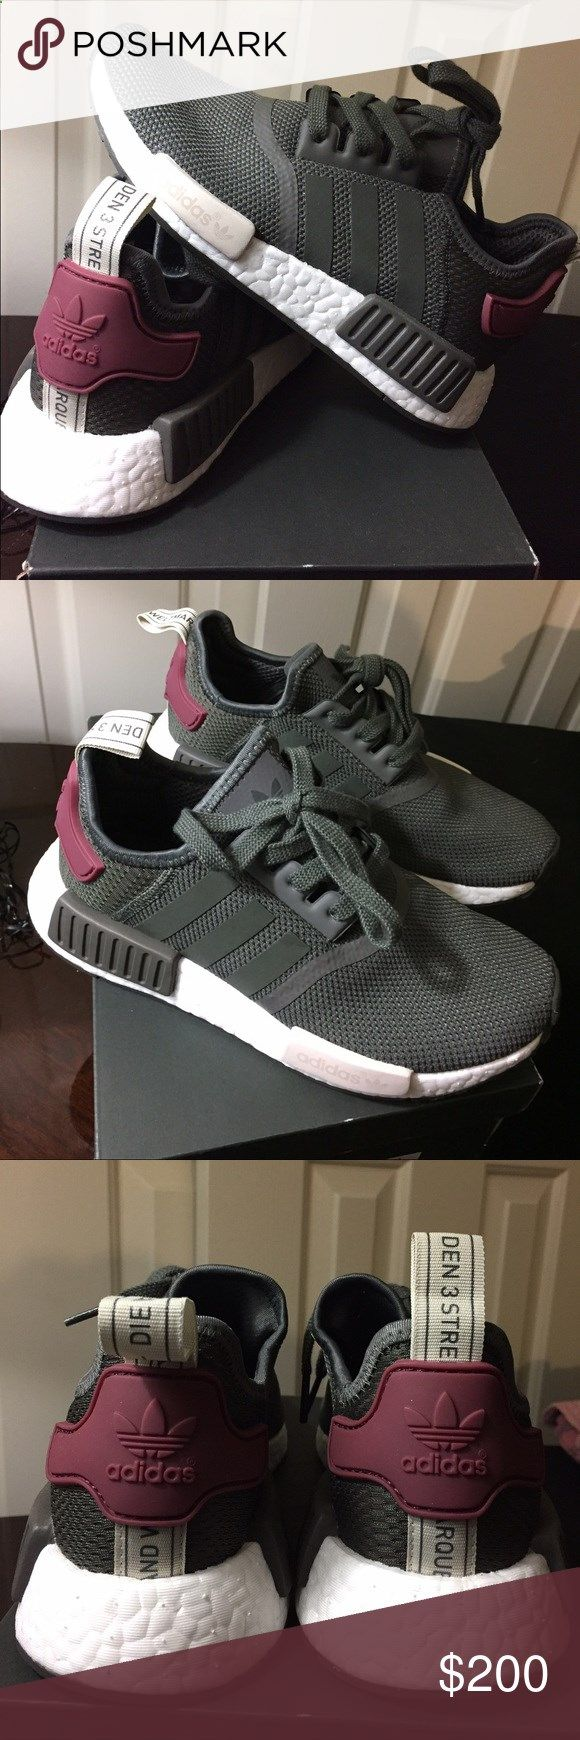 Adidas NMD R1 NEW NEW Adidas NMD R1 Size 5.5 Color: Utility Gray/Maroon (BA7752) I bought it from Adidas website Adidas Shoes Sneakers ,Adidas shoes #adidas #shoes